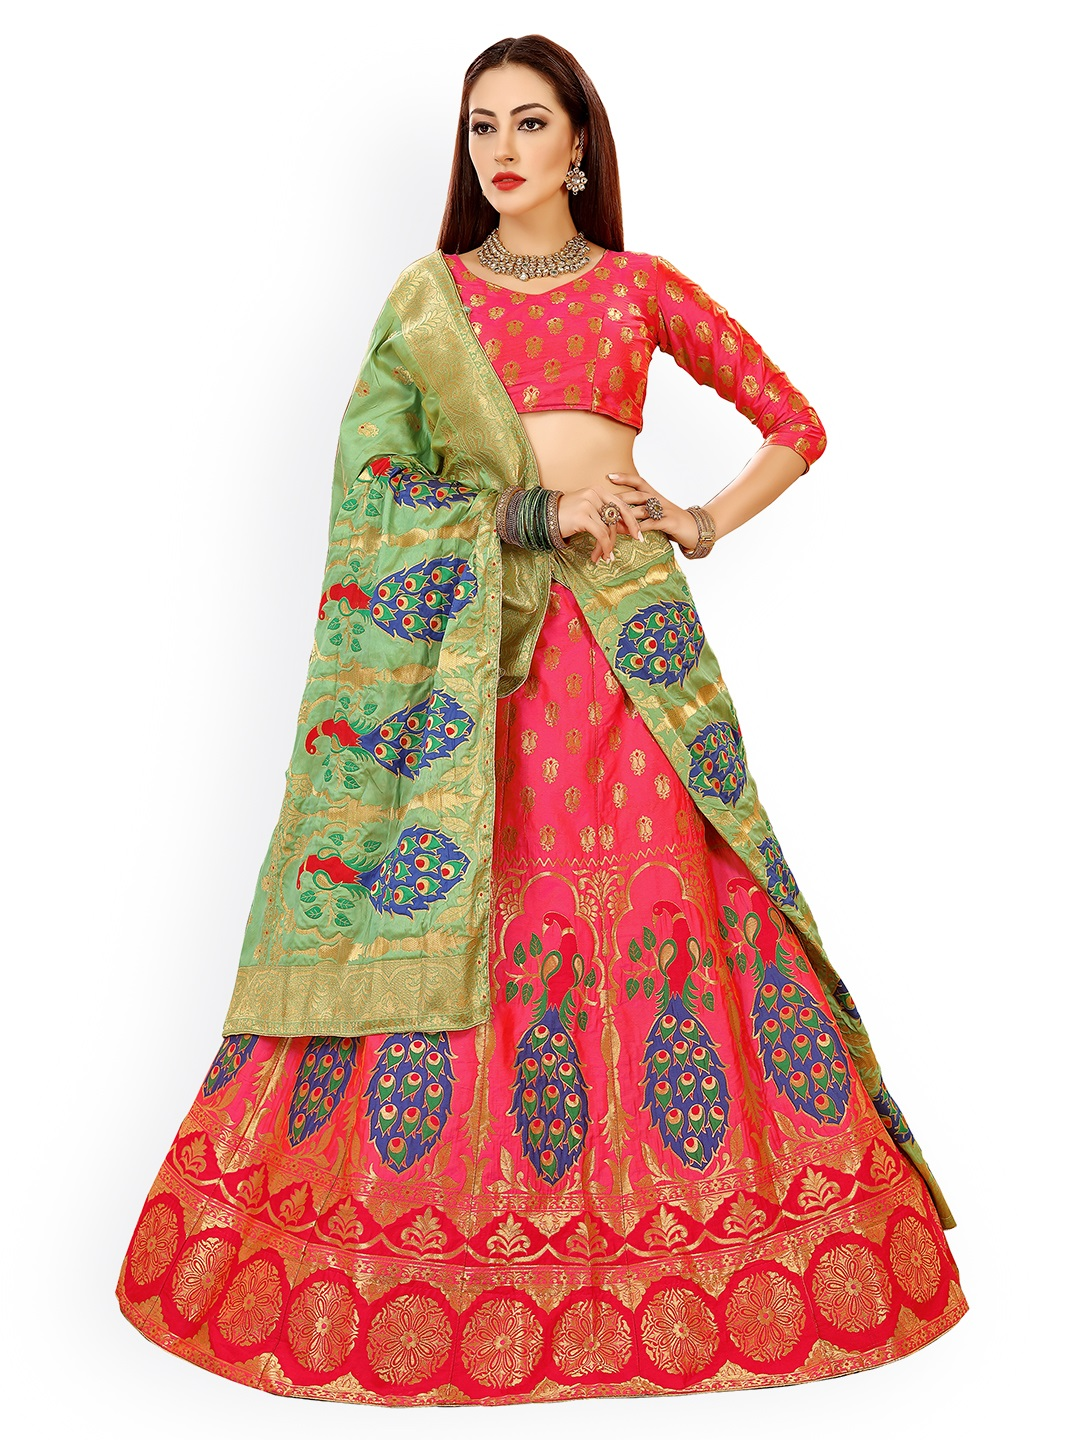 Chhabra 555 Pink & Green Embellished Semi-Stitched Lehenga & Unstitched Blouse with Dupatta Price in India